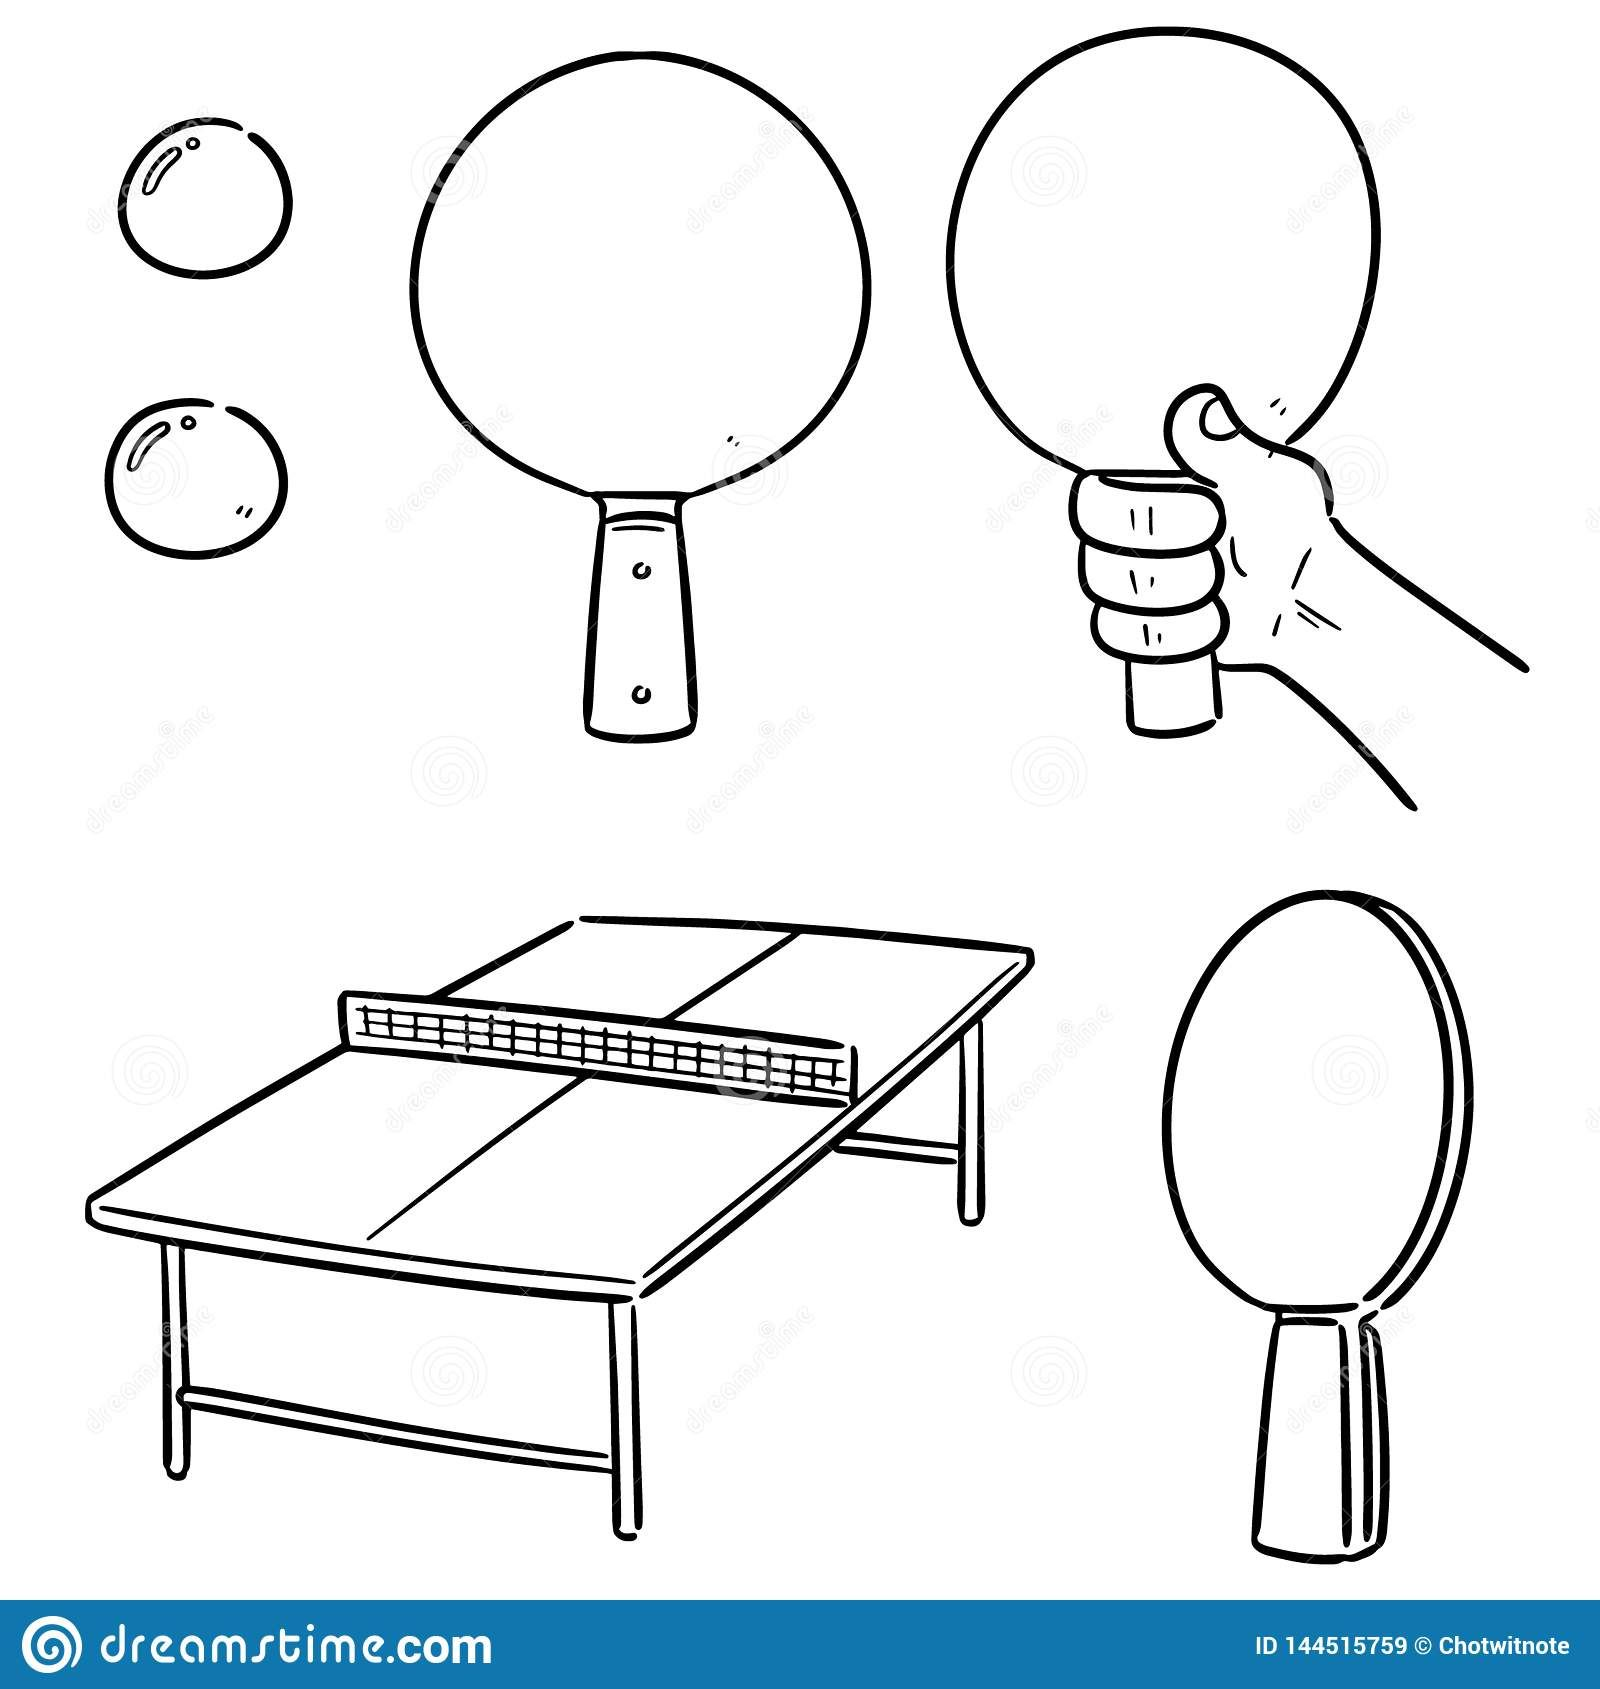 Pin By Kaca Kalocova On Doodles In 2020 Table Tennis Doodle Illustration Doodles